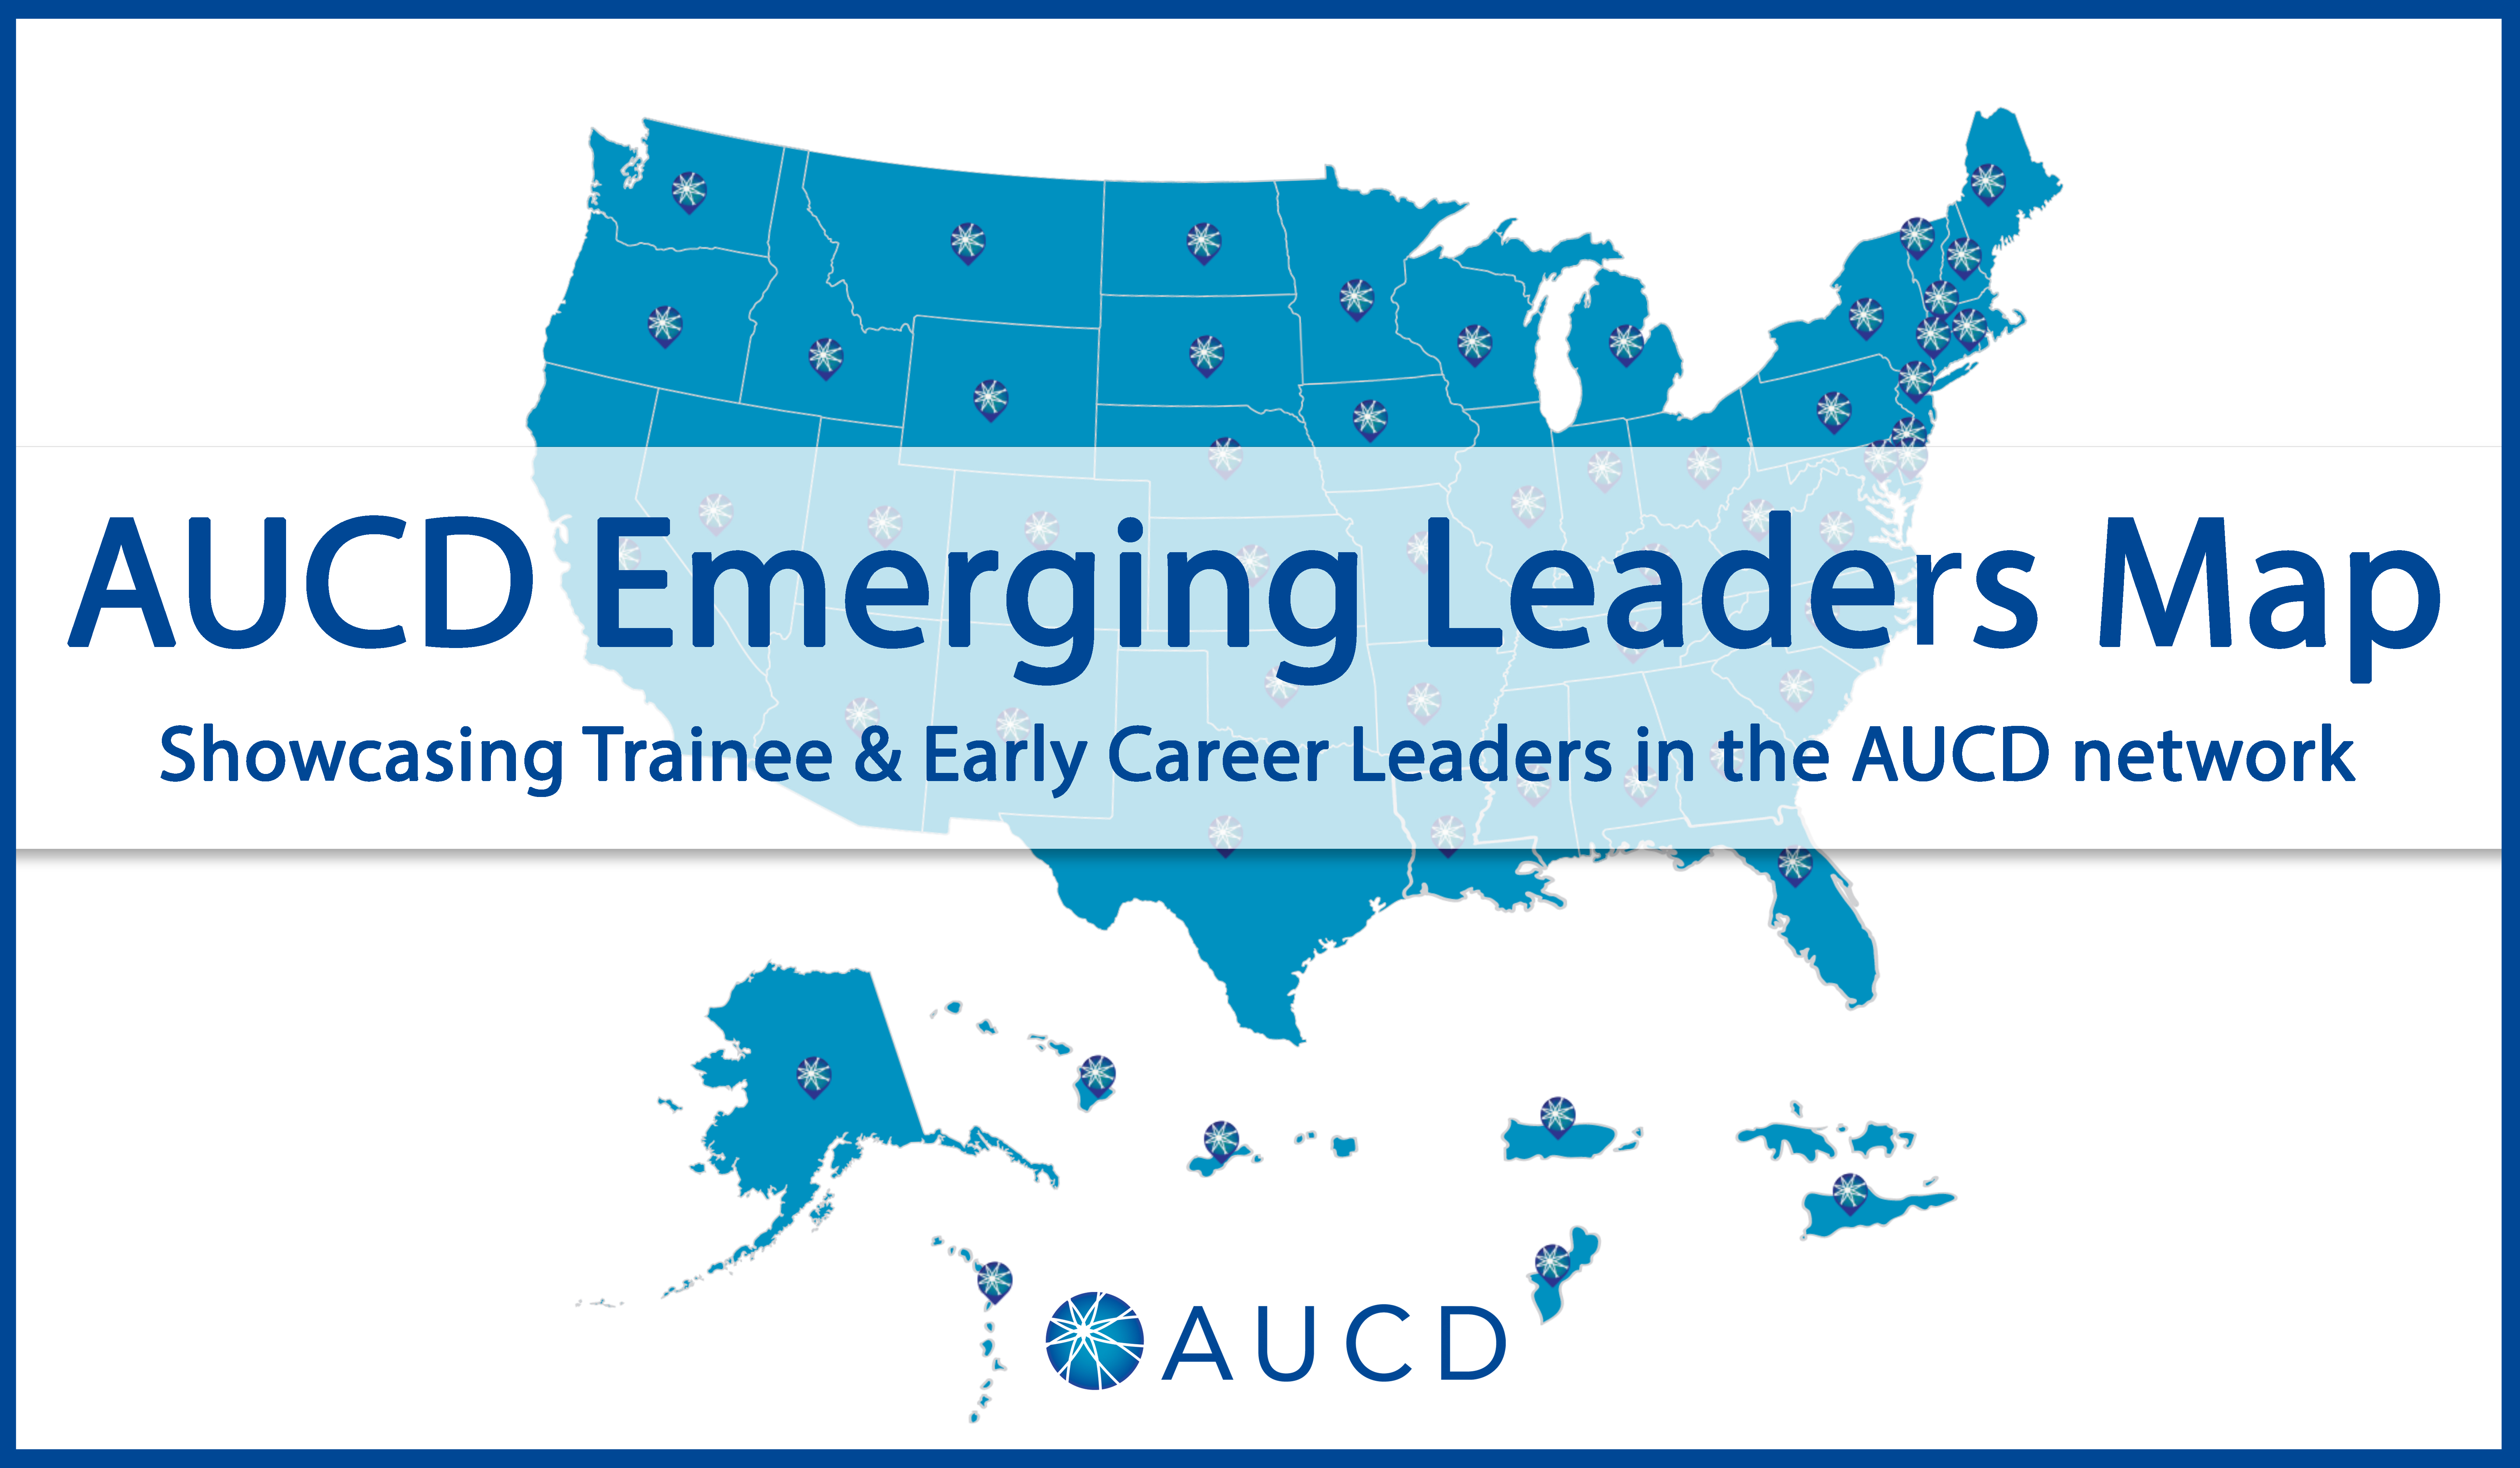 The AUCD Emgerging Leaders Map